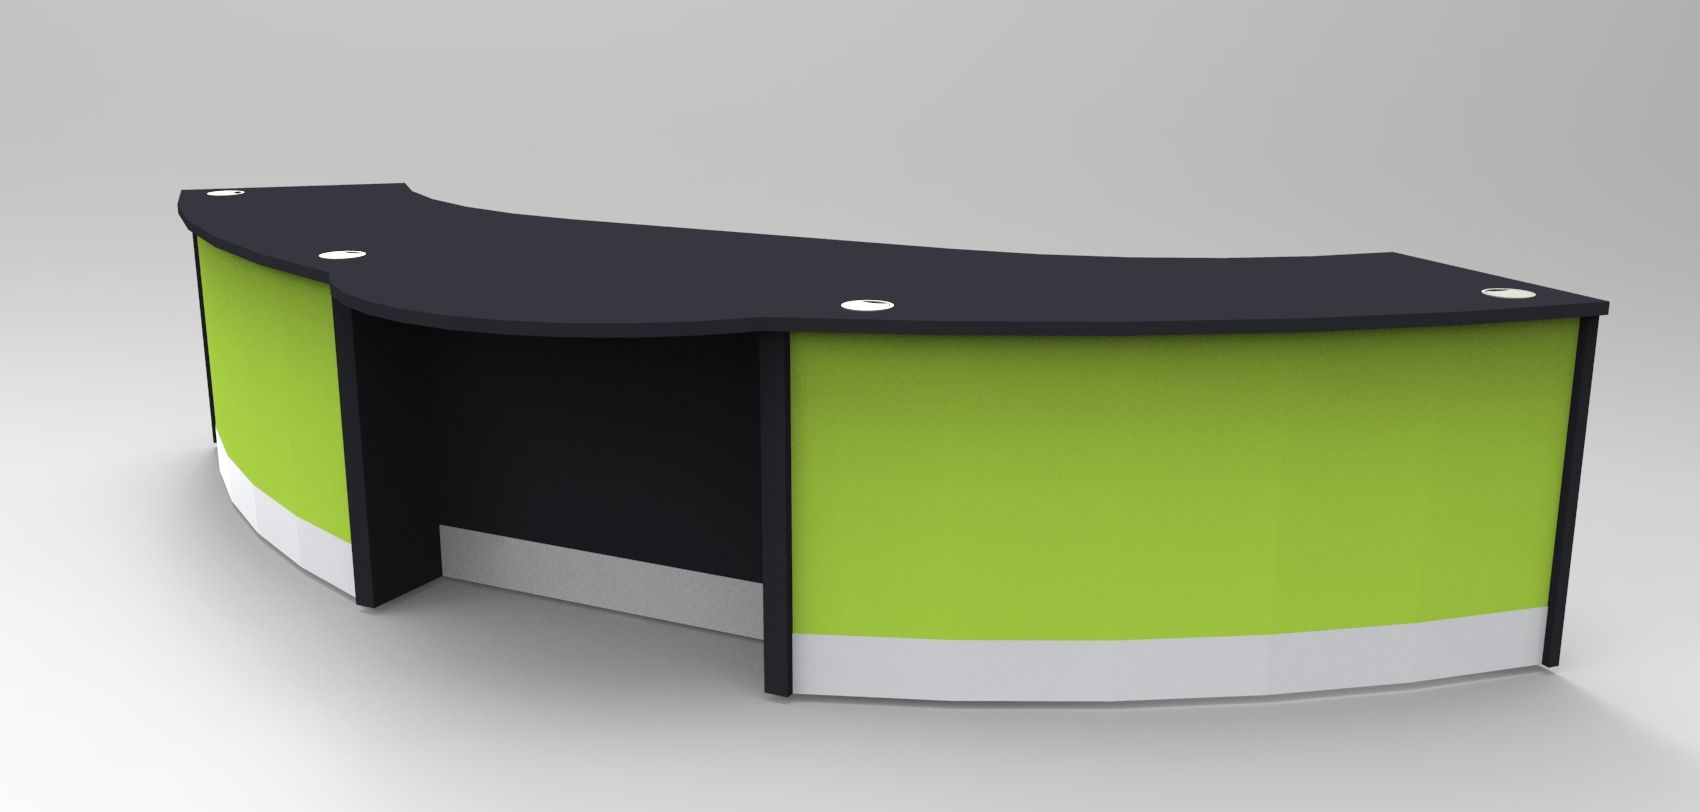 lime green office furniture. Aero DDA Reception Desk Finished In Black With Lime Green Modesty Panels Office Furniture